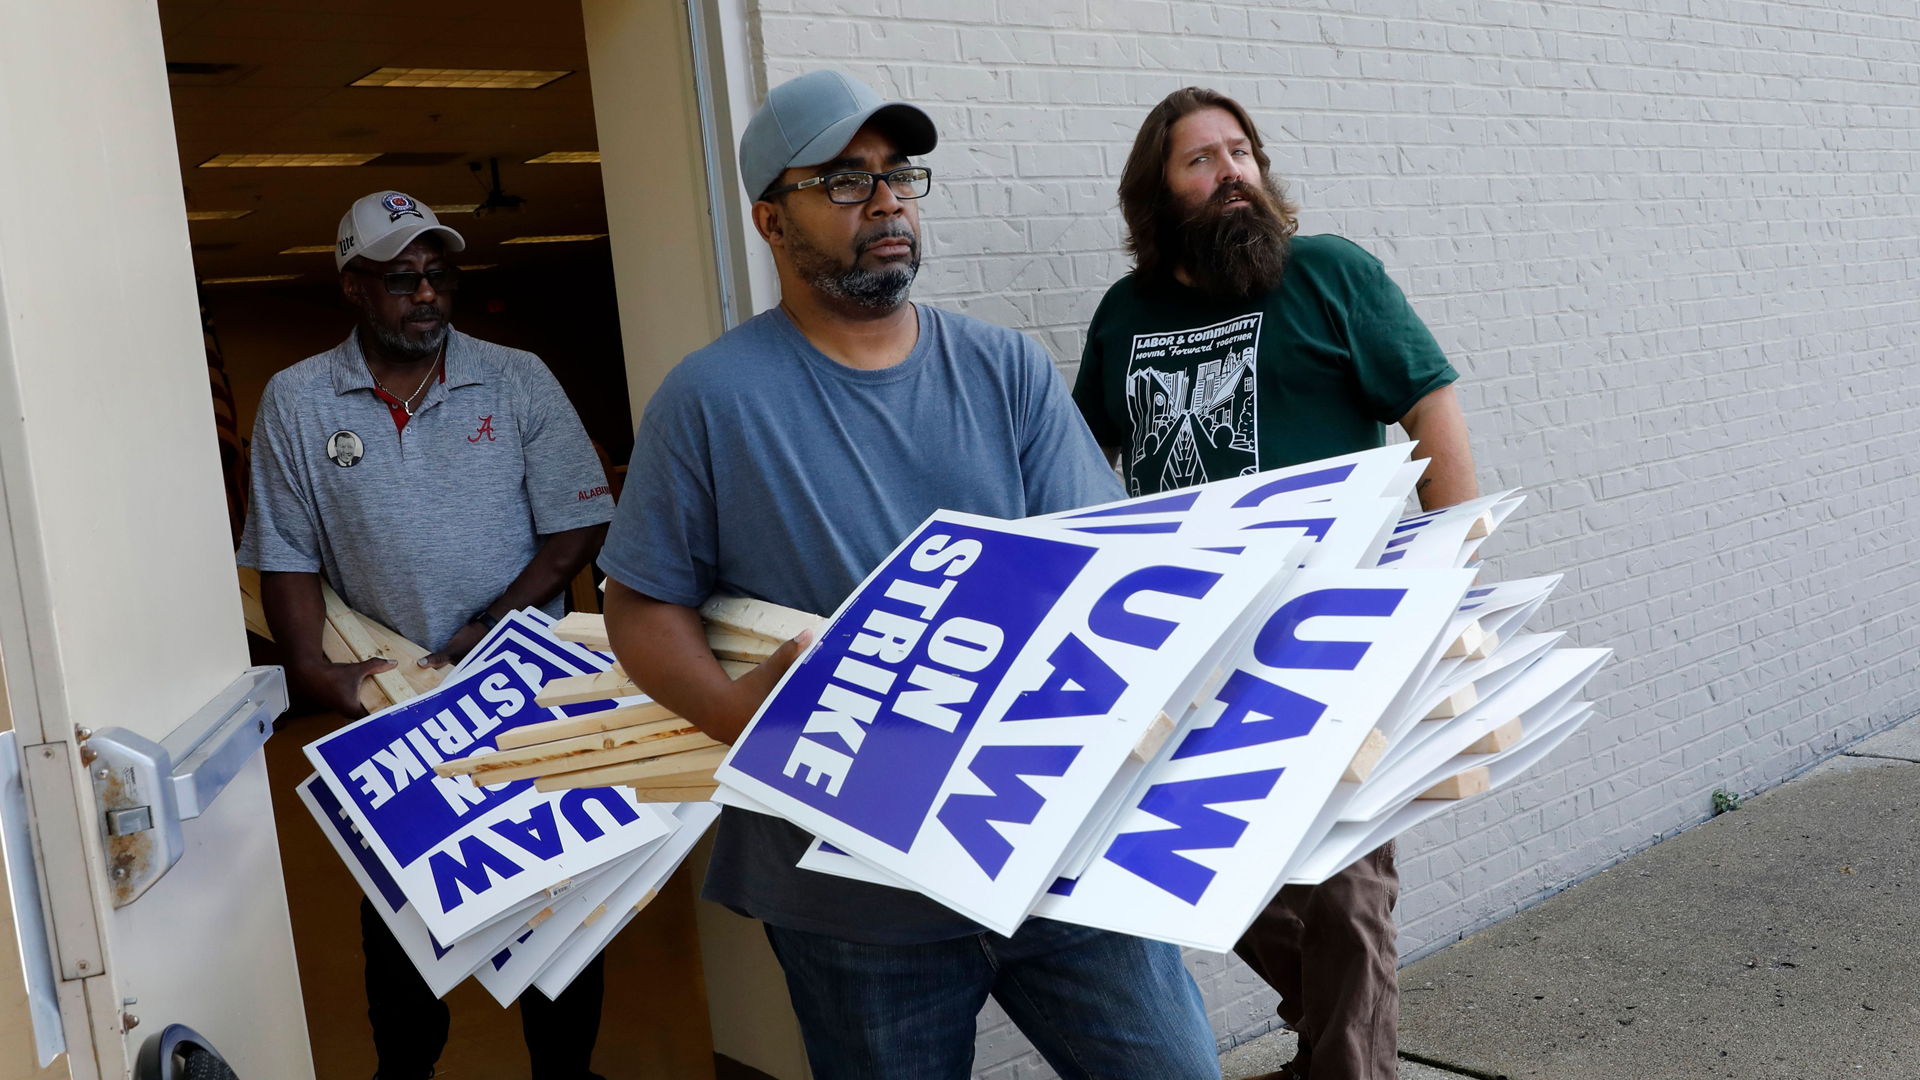 General Motors Co. employee Carl Ellison carries strike signs outside of the United Auto Workers (UAW) Local 163 which represents GMs Romulus Powertrain on September 15, 2019 in Westland, Michigan. (Credit: Jeff Kowalsky/AFP/Getty Images)